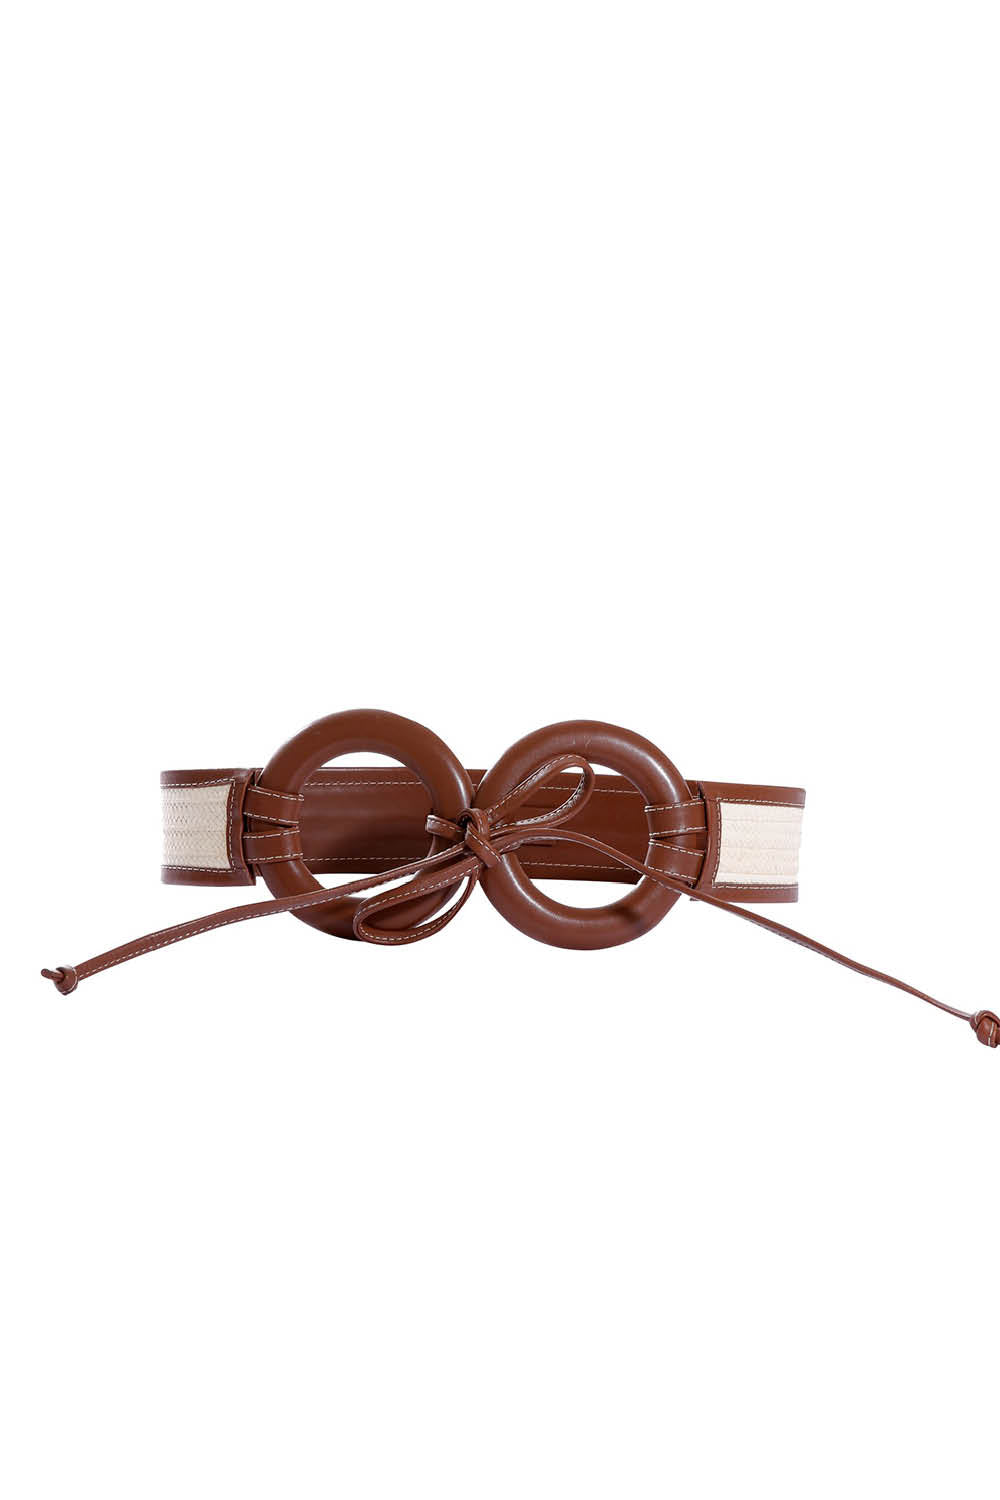 Zenú Belt in Leather and Caña Flecha in Tan